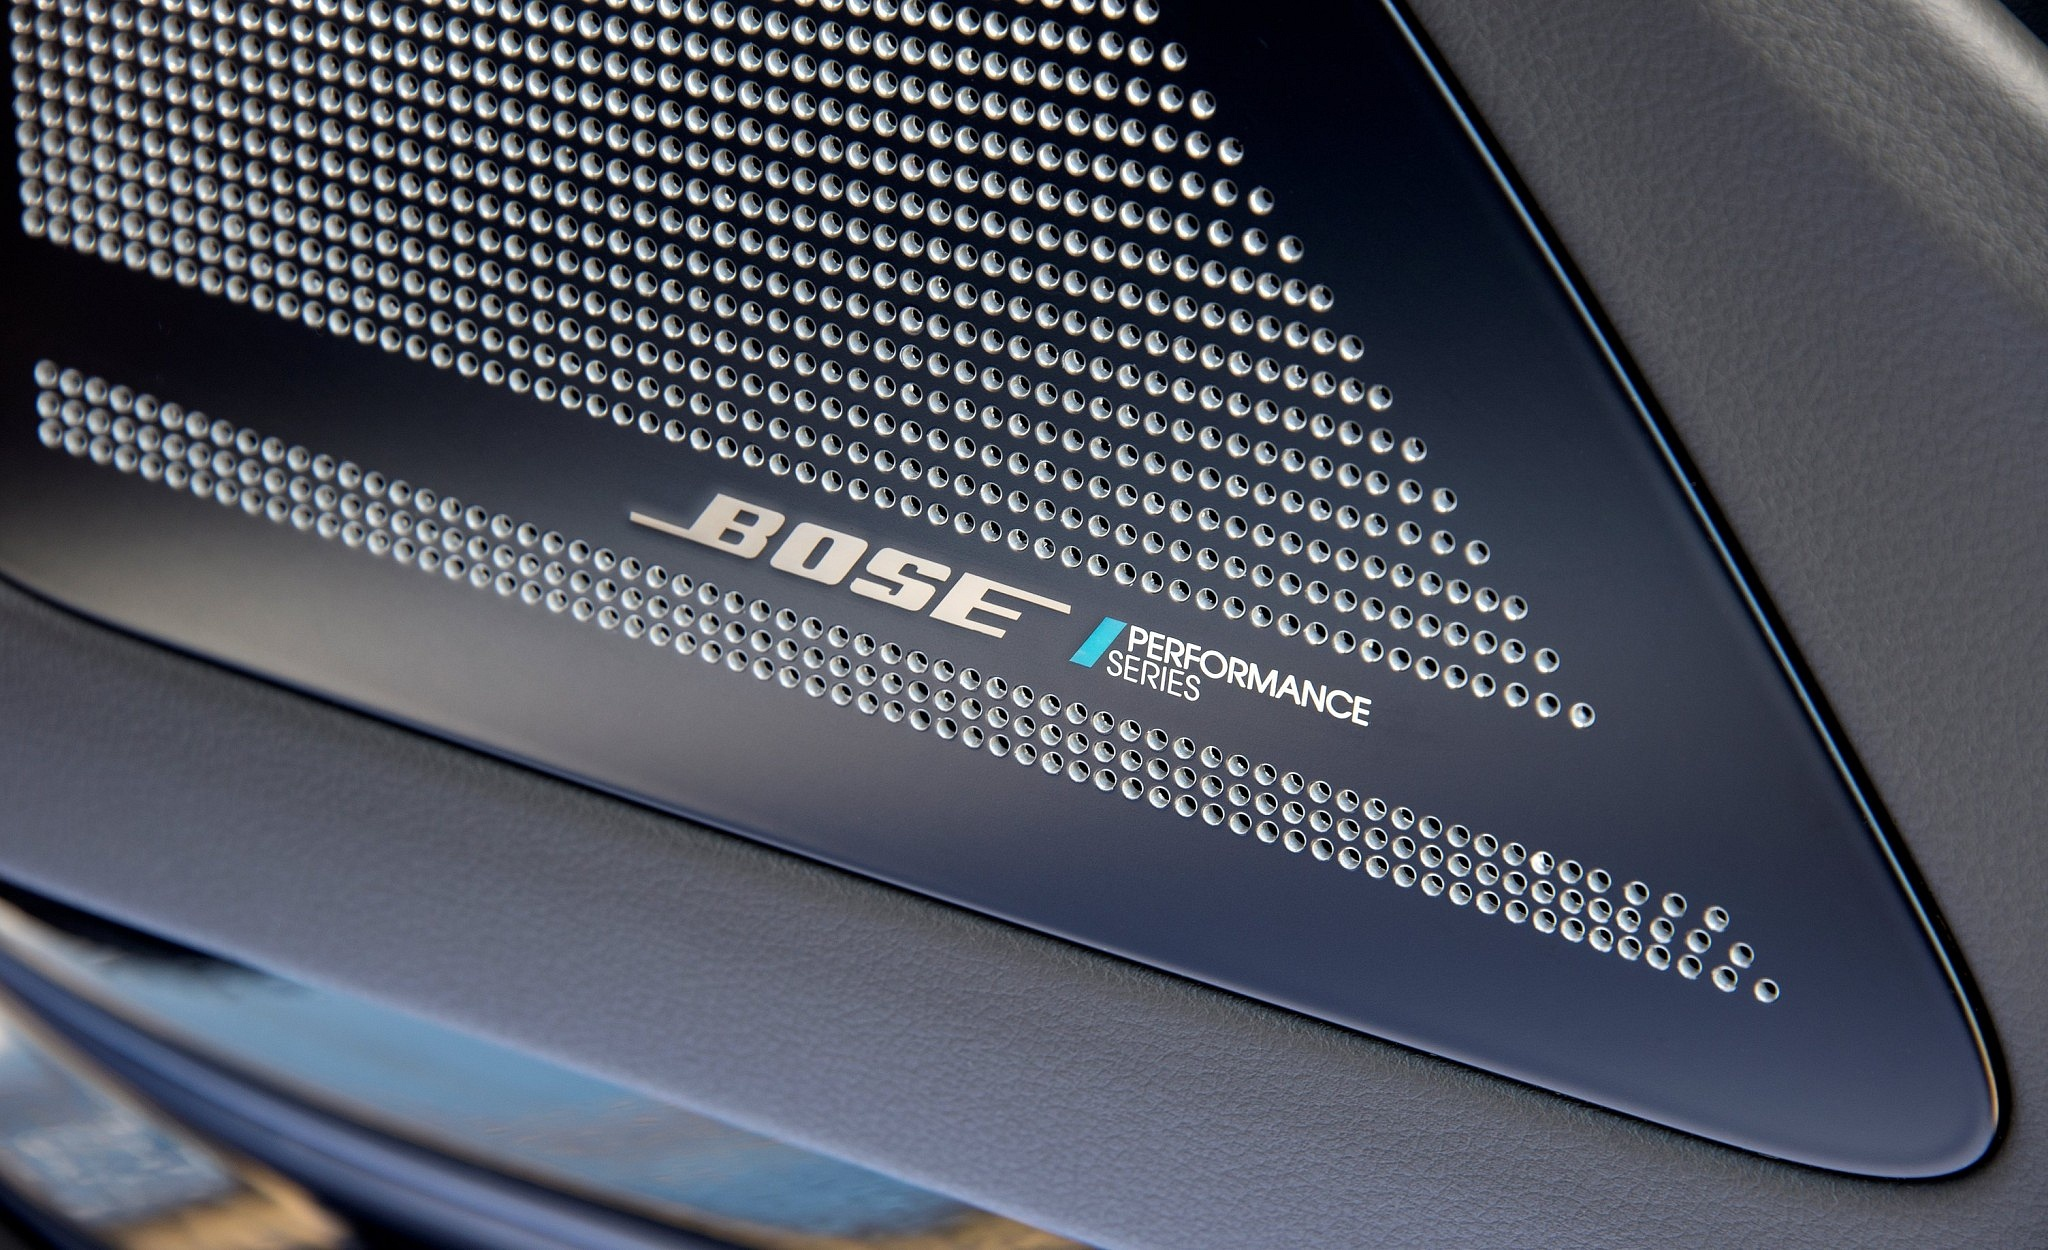 Bose Automotive Performance Series